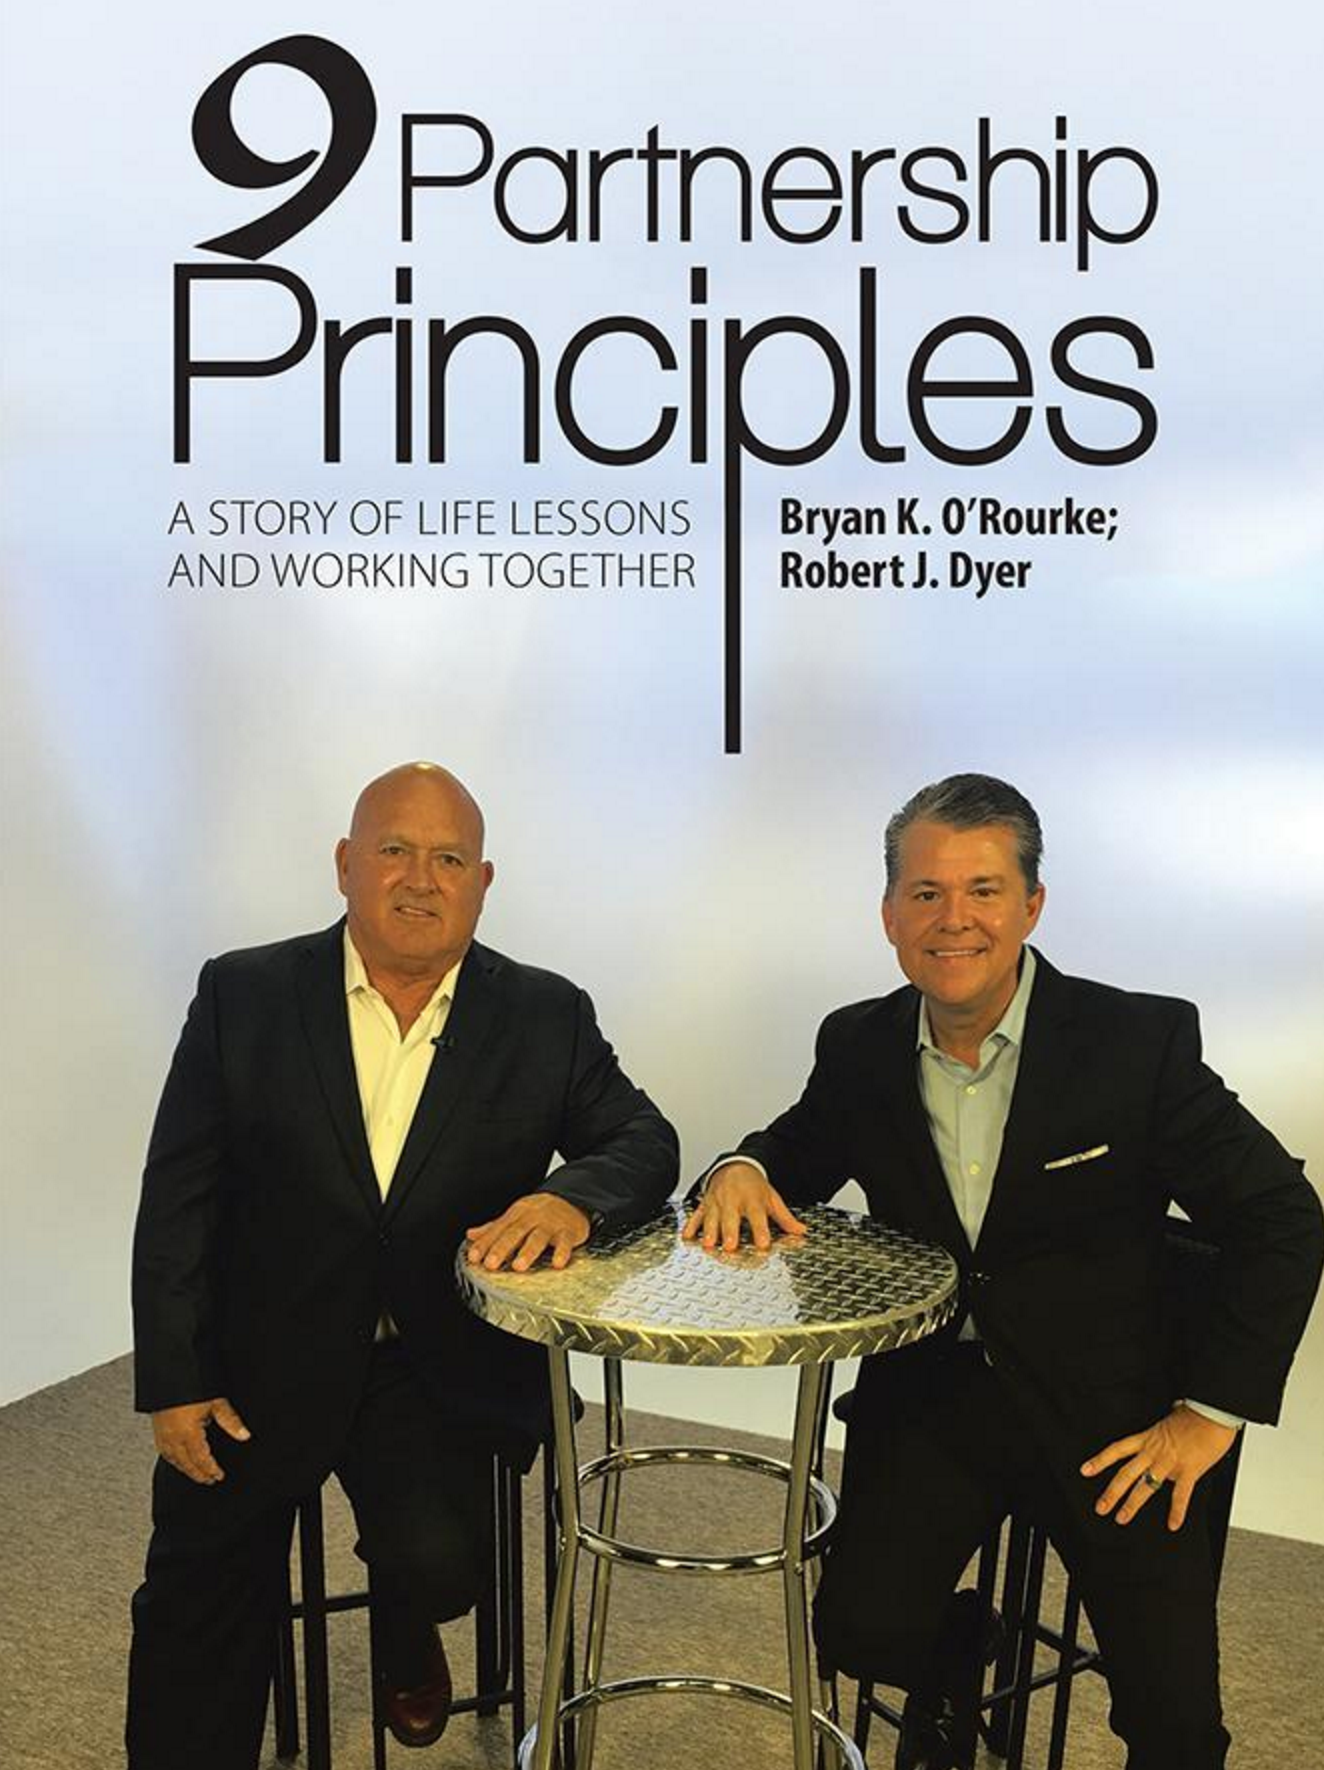 9 partnership principles robert dyer bryan k o'rourke fitness technology podcast